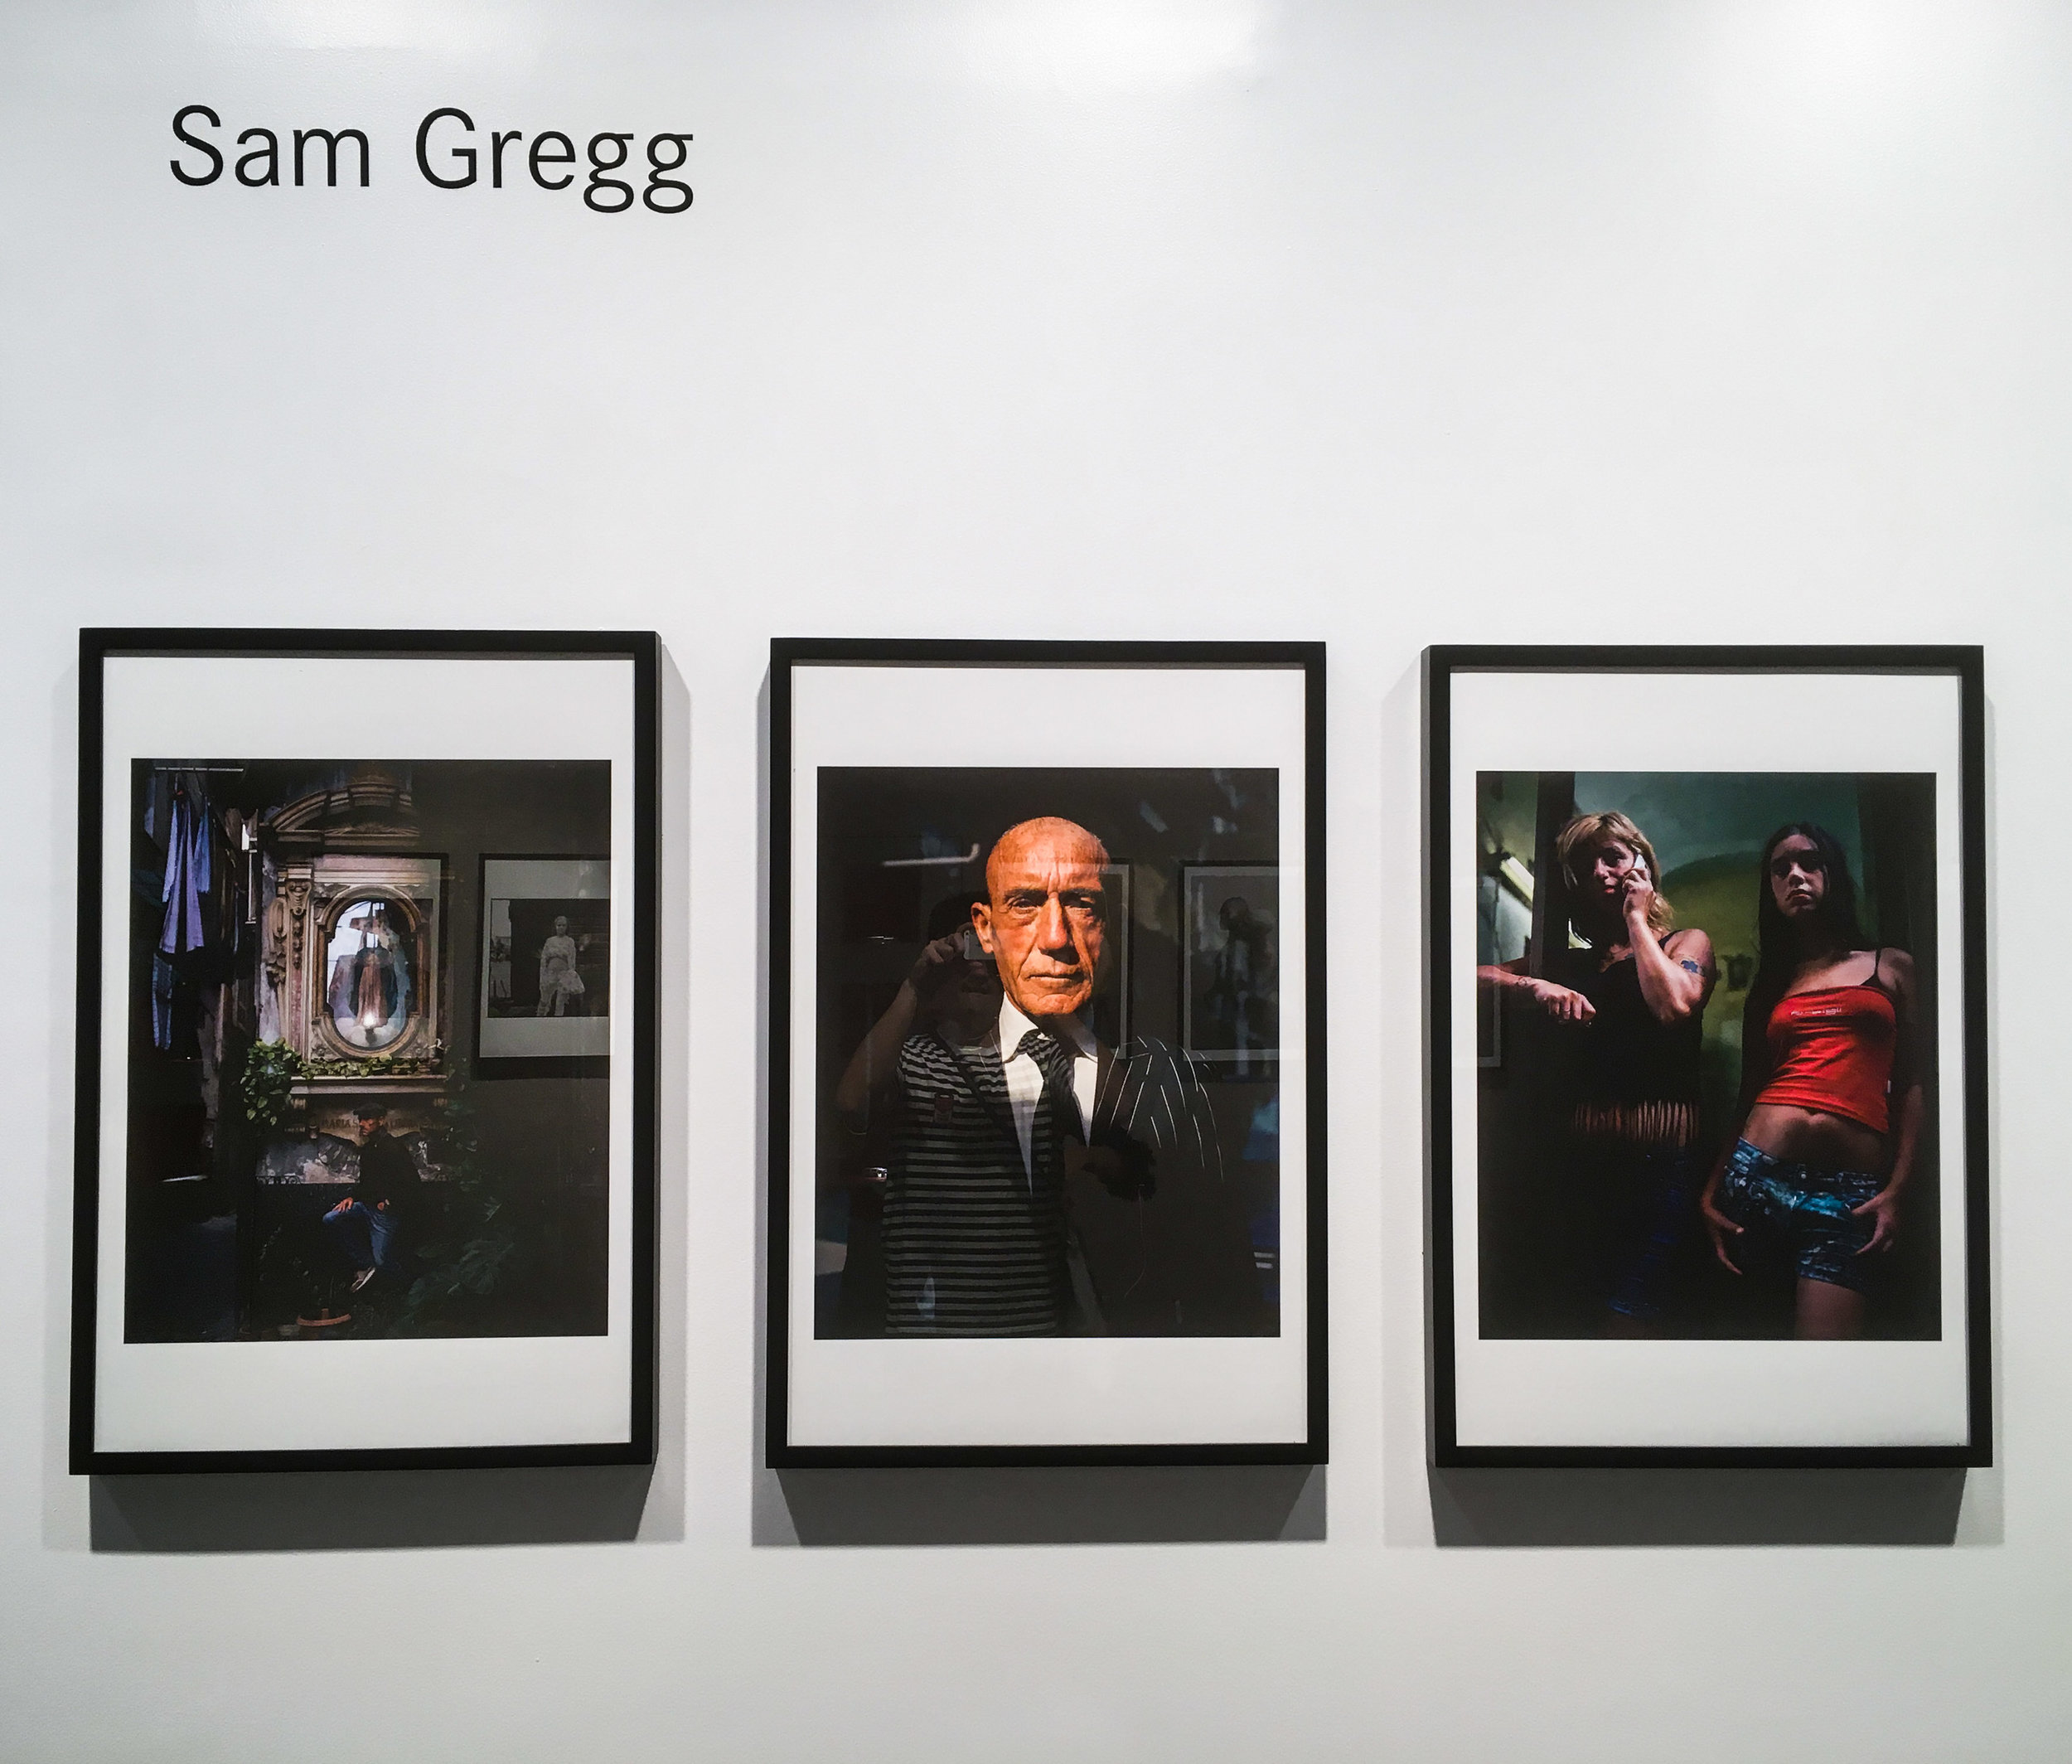 sam-gregg-vogue-italia-when-ethics-meets-aesthetics-leica-gallery-milan-photography.jpg